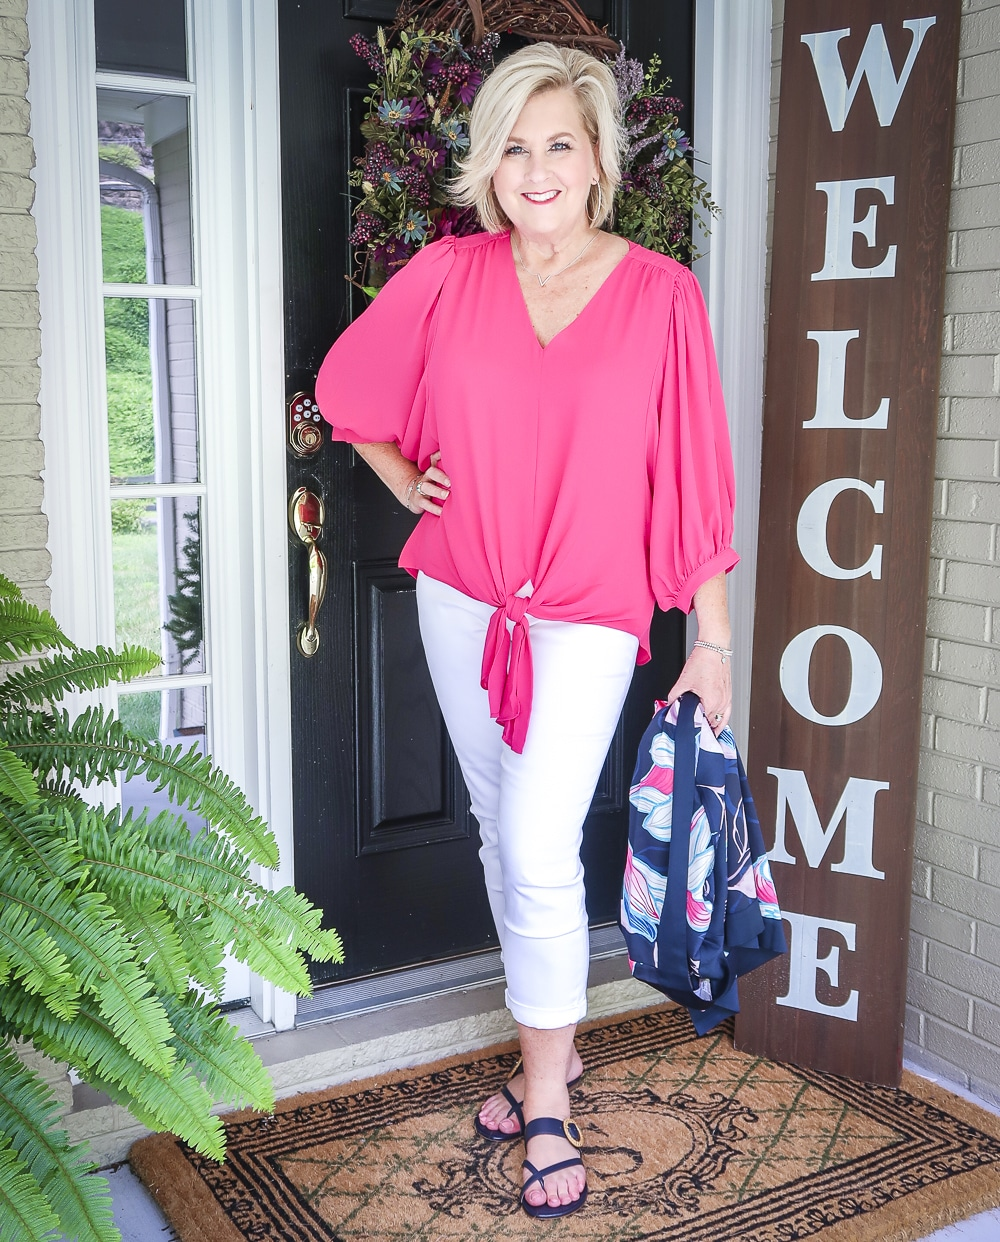 Fashion Blogger 50 Is Not Old is bright and colorful in a tie-front pink blouse, white girlfriend crop jeans, and navy sandals